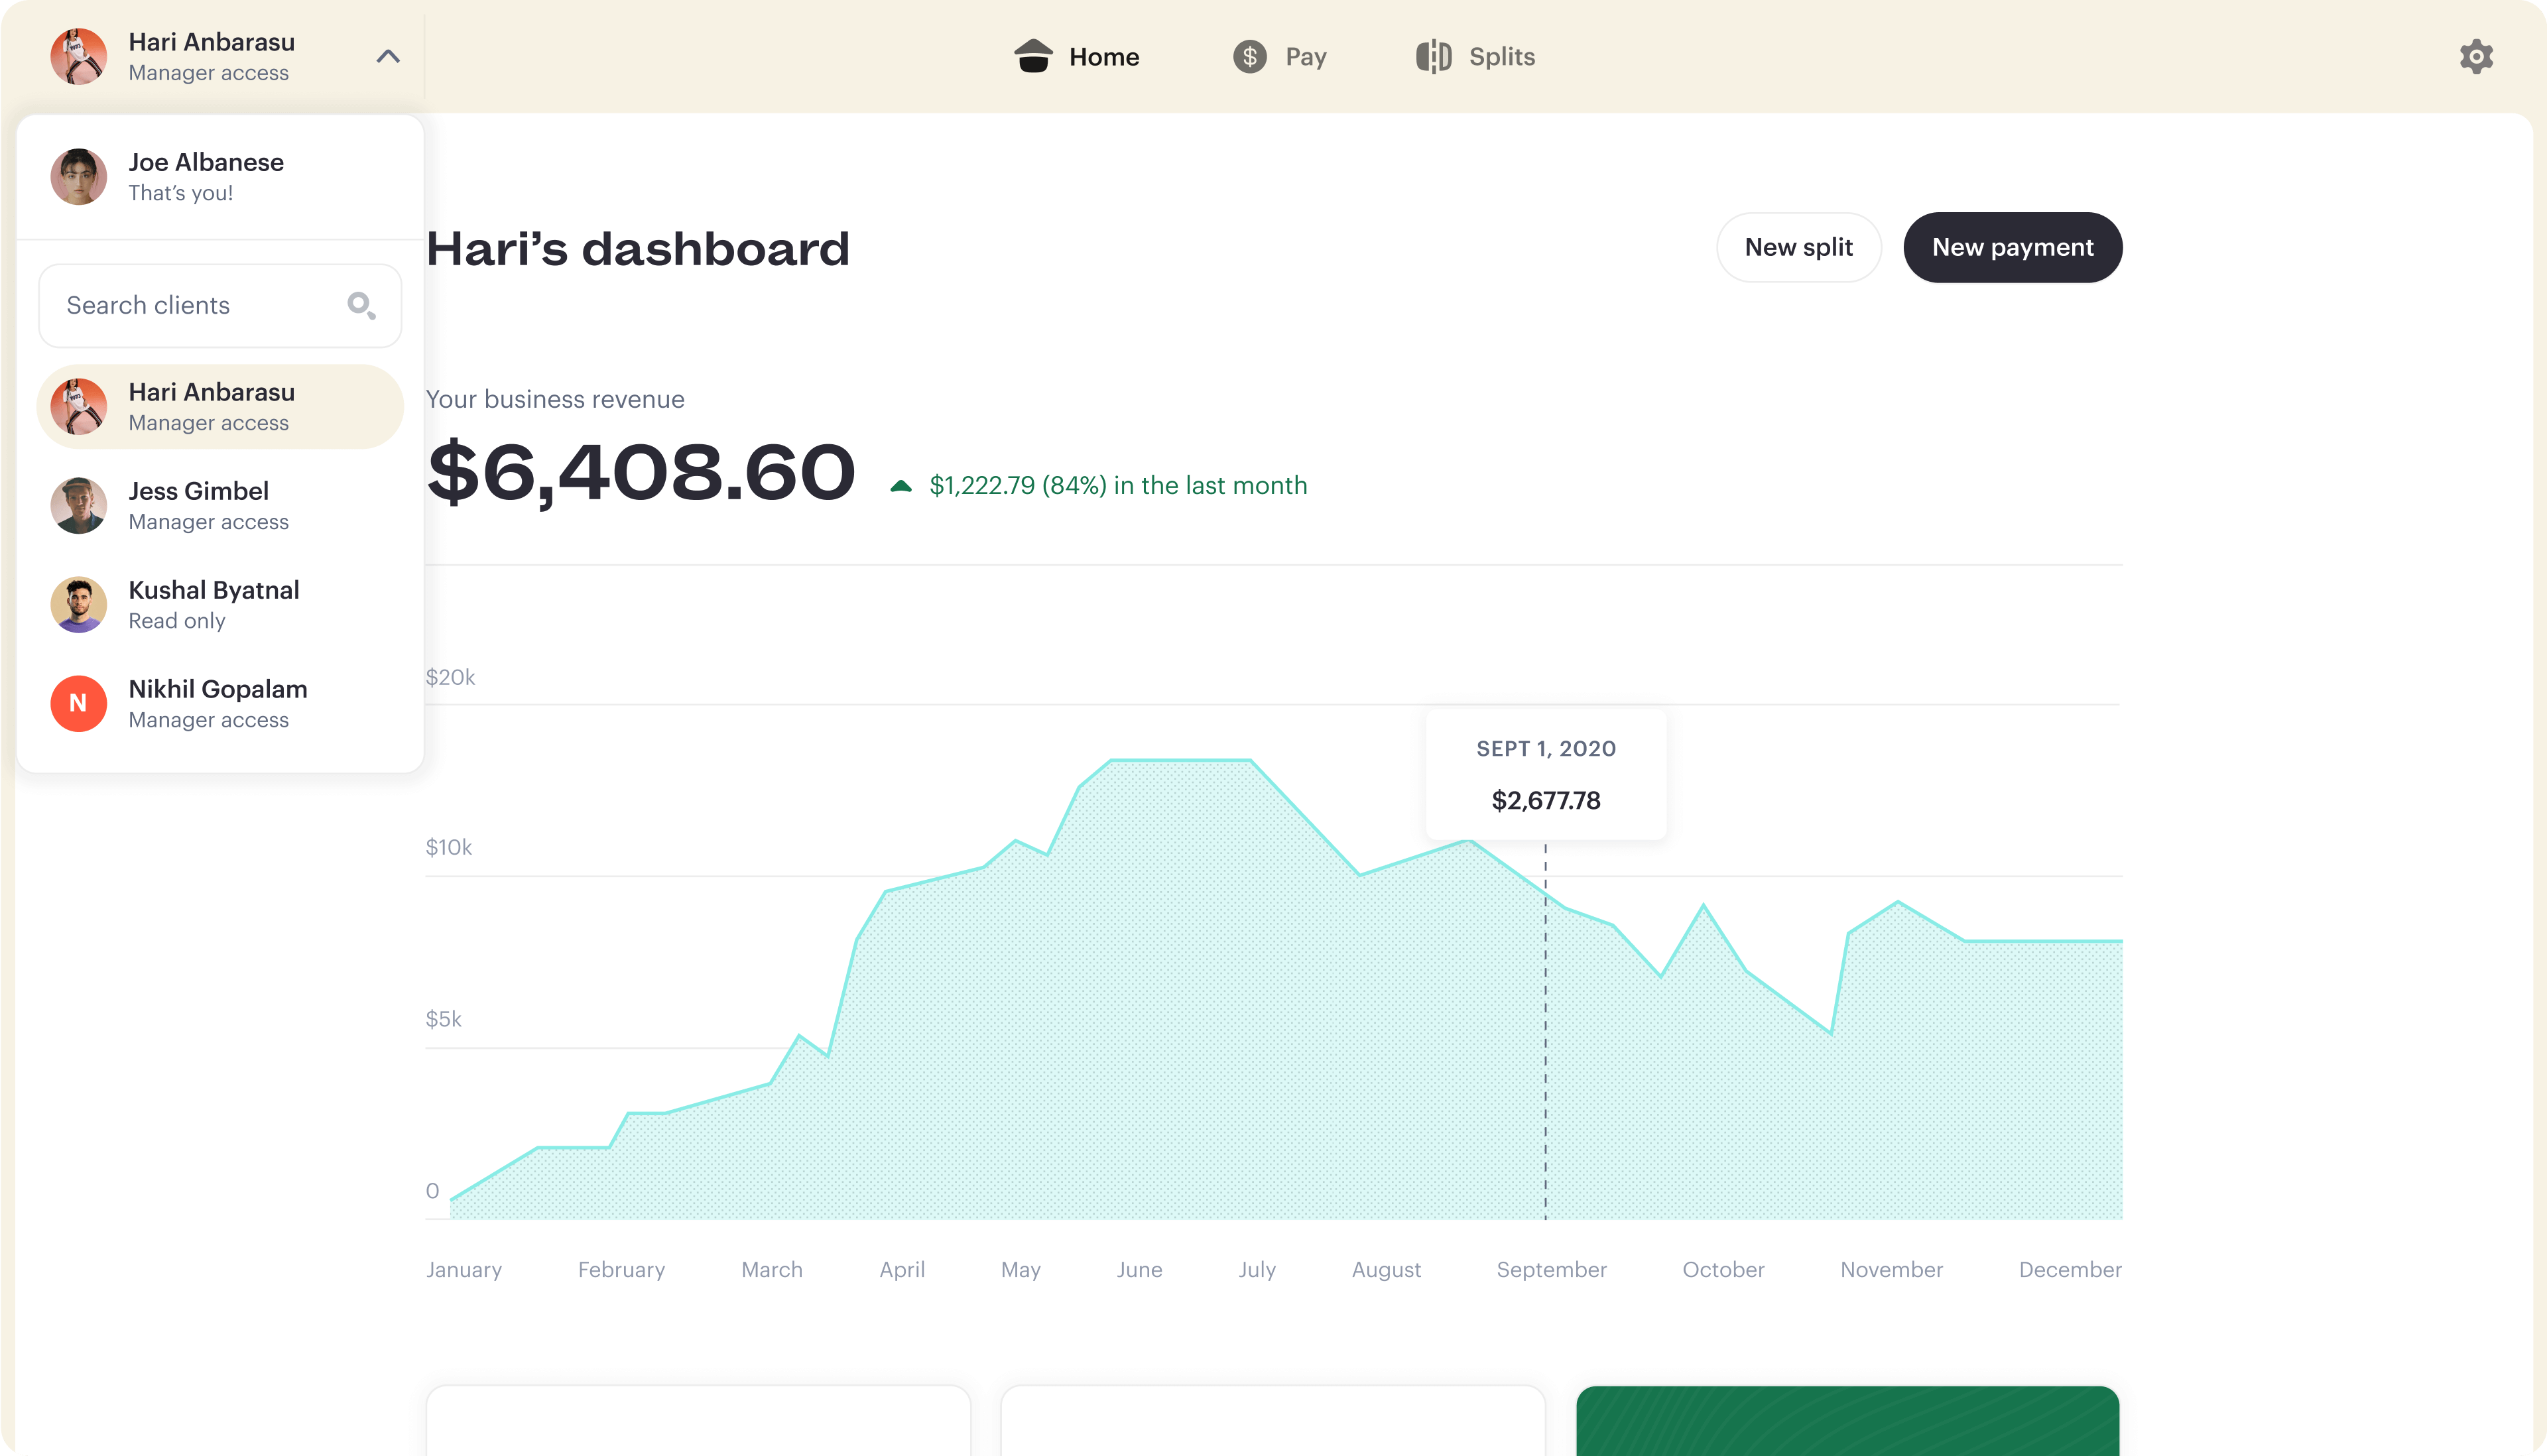 Stir Dashboard for Managers